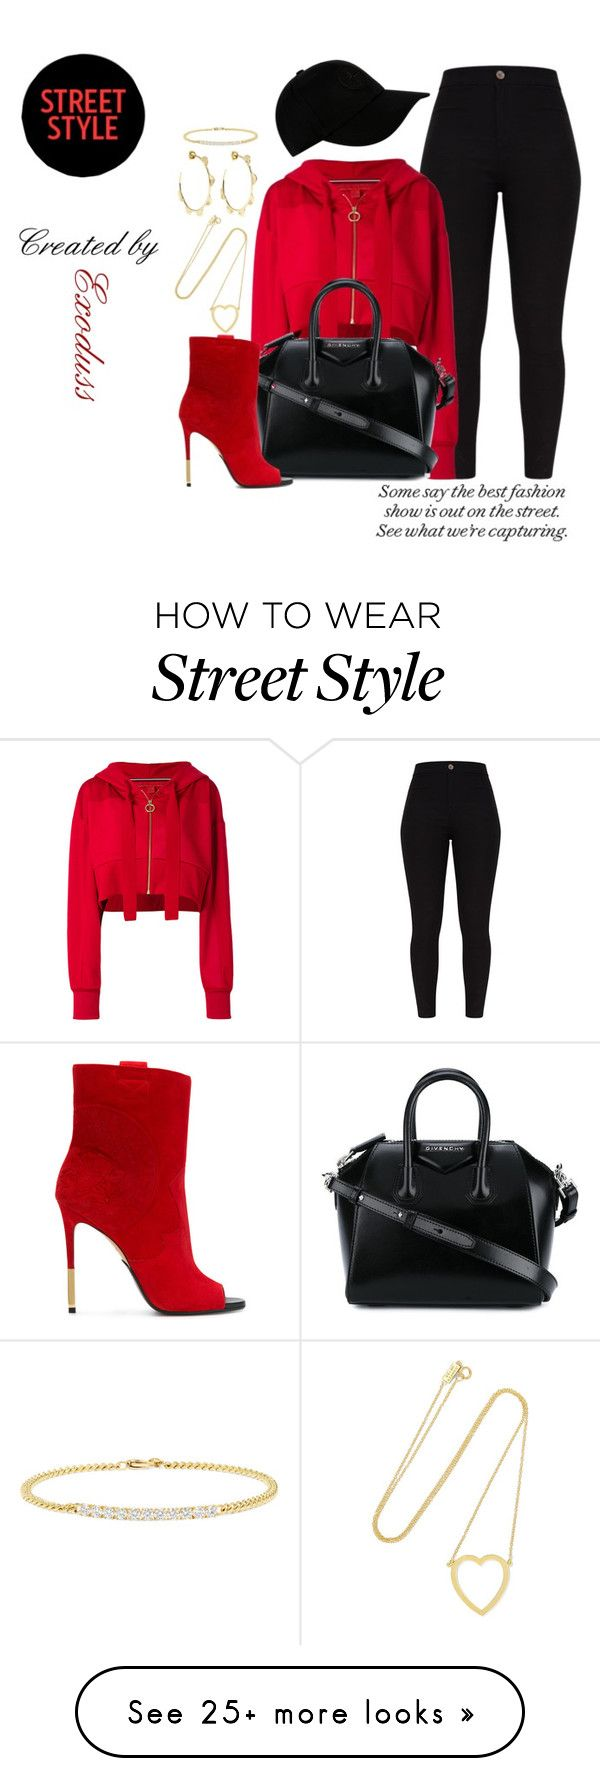 """NYFW Street Style"" by exoduss on Polyvore featuring Tommy Hilfiger, Givenchy, Ippolita, STONE ISLAND, Jennifer Meyer Jewelry, Balmain, Jemma Wynne, contestentry and nyfwstreetstyle"